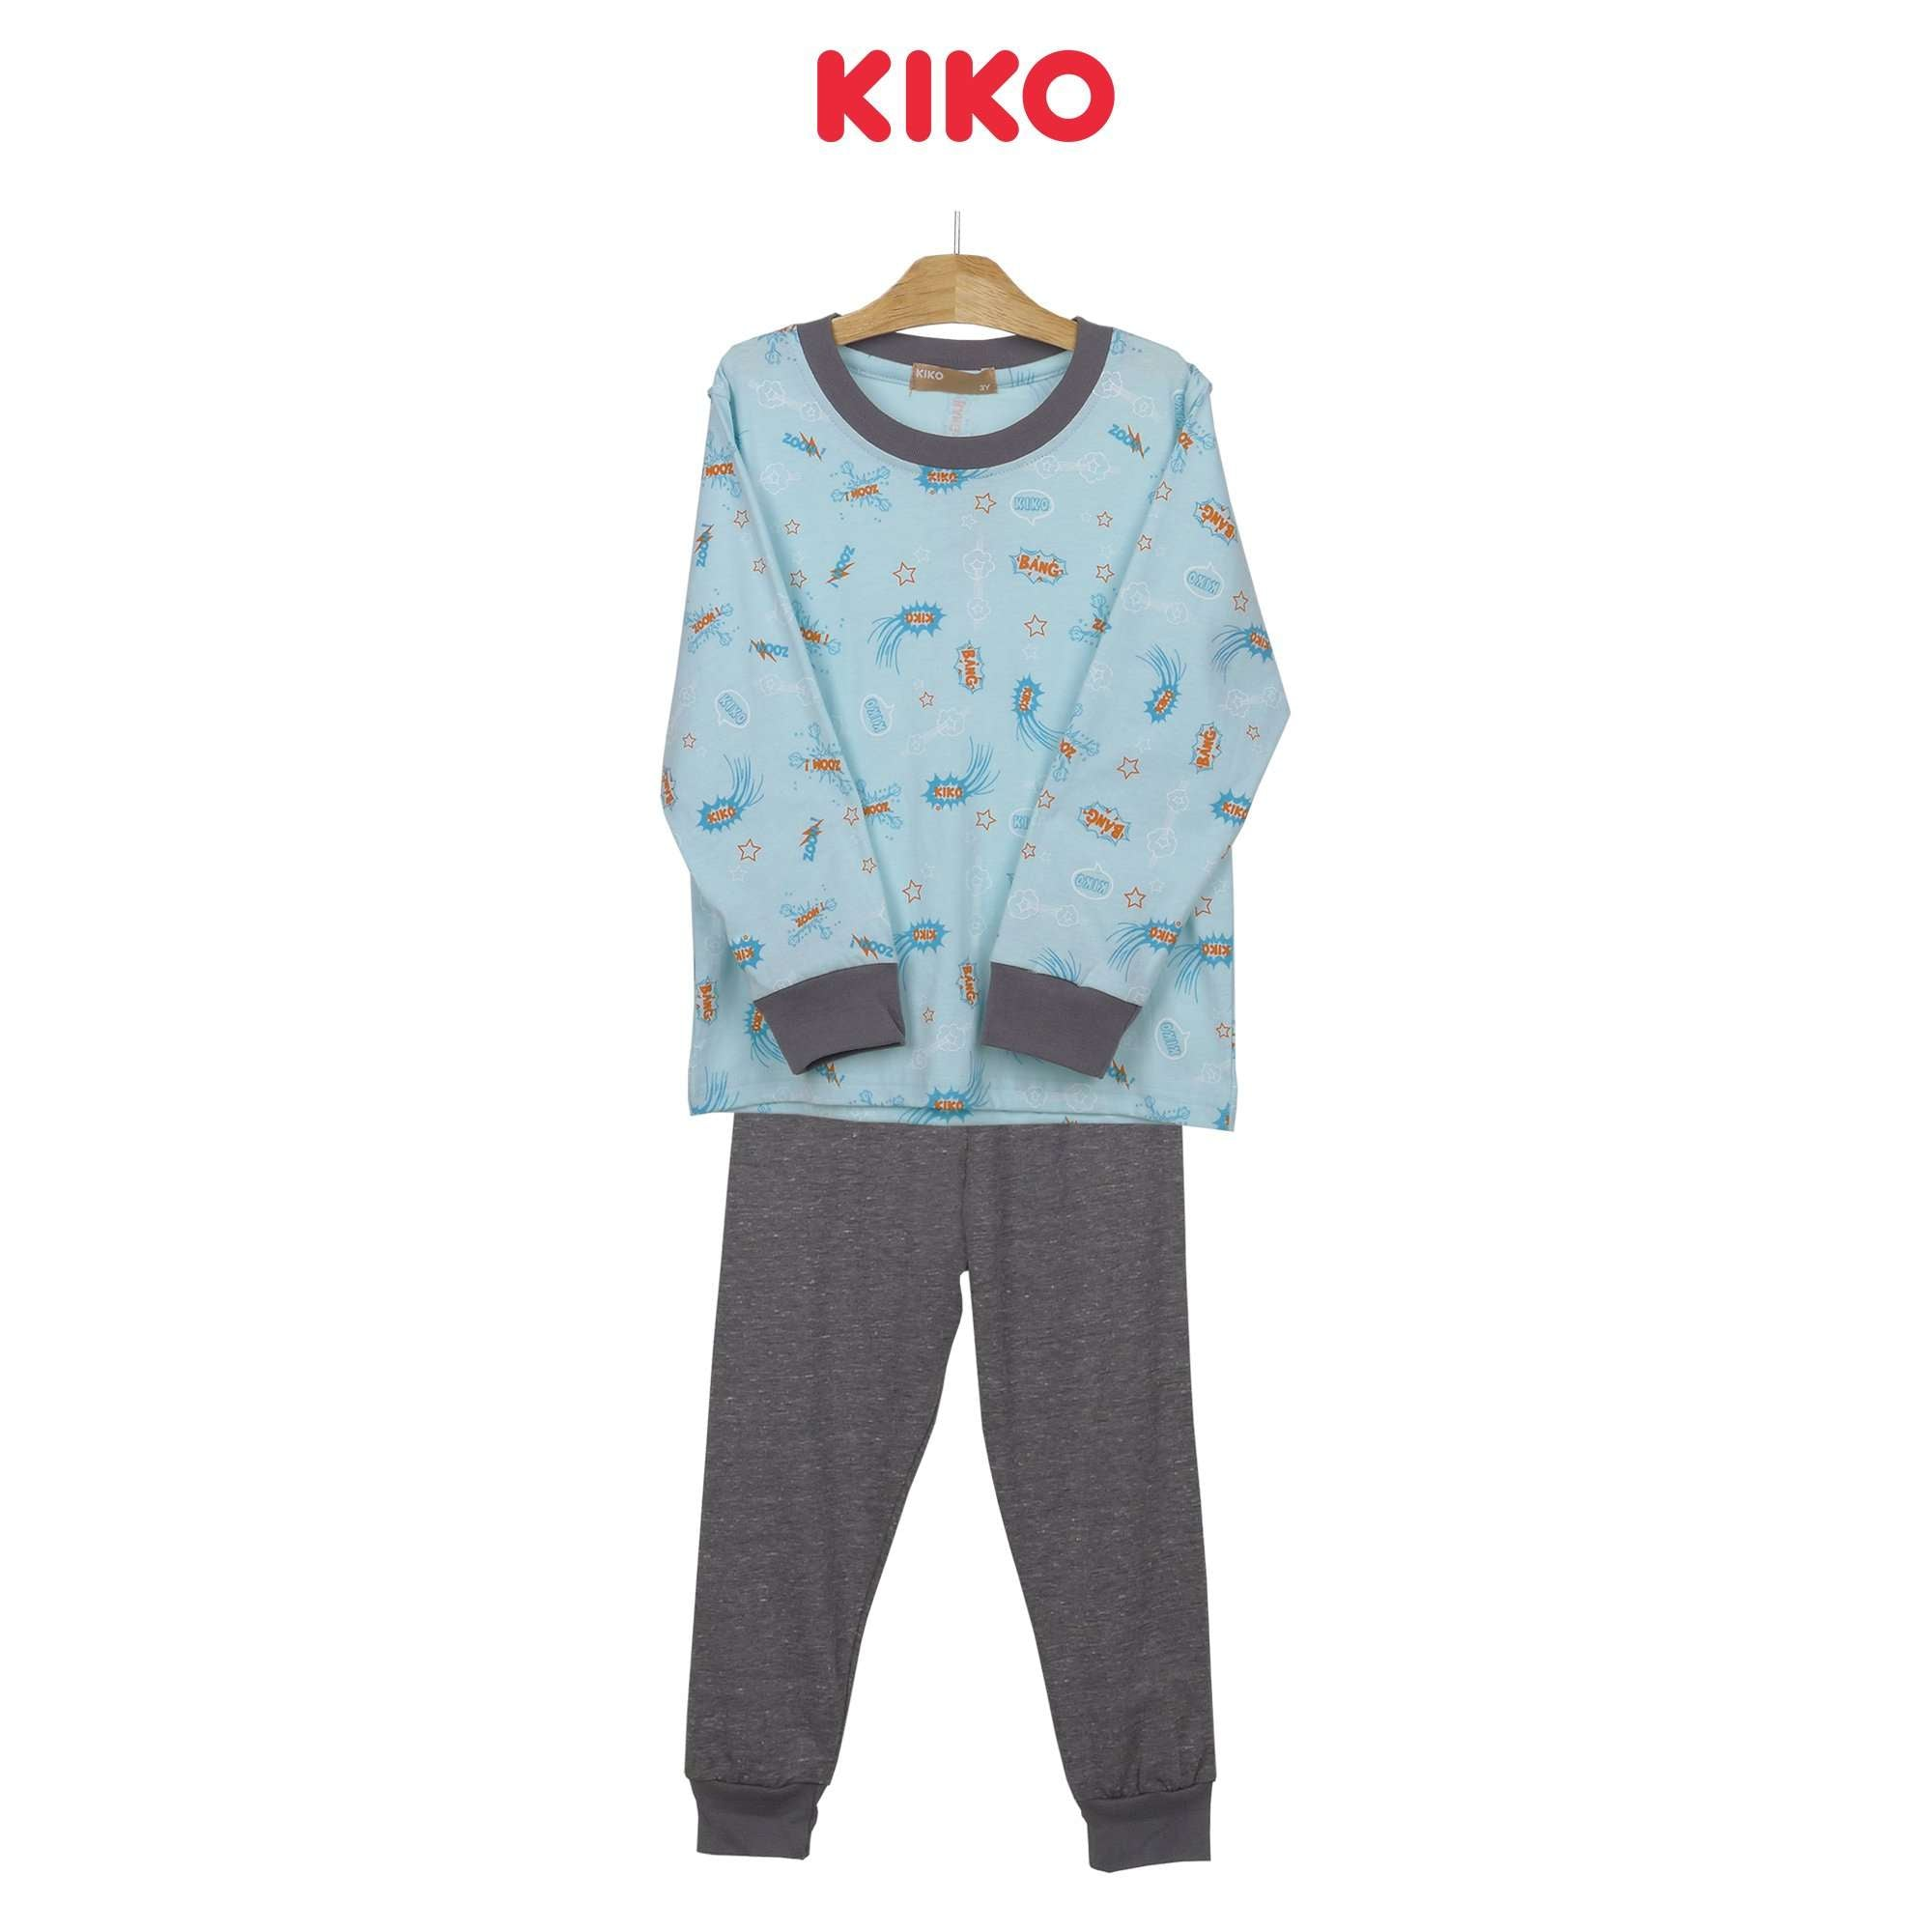 KIKO Boy Long Sleeve Long Pants Suit Pyjamas 121244-431 : Buy KIKO online at CMG.MY